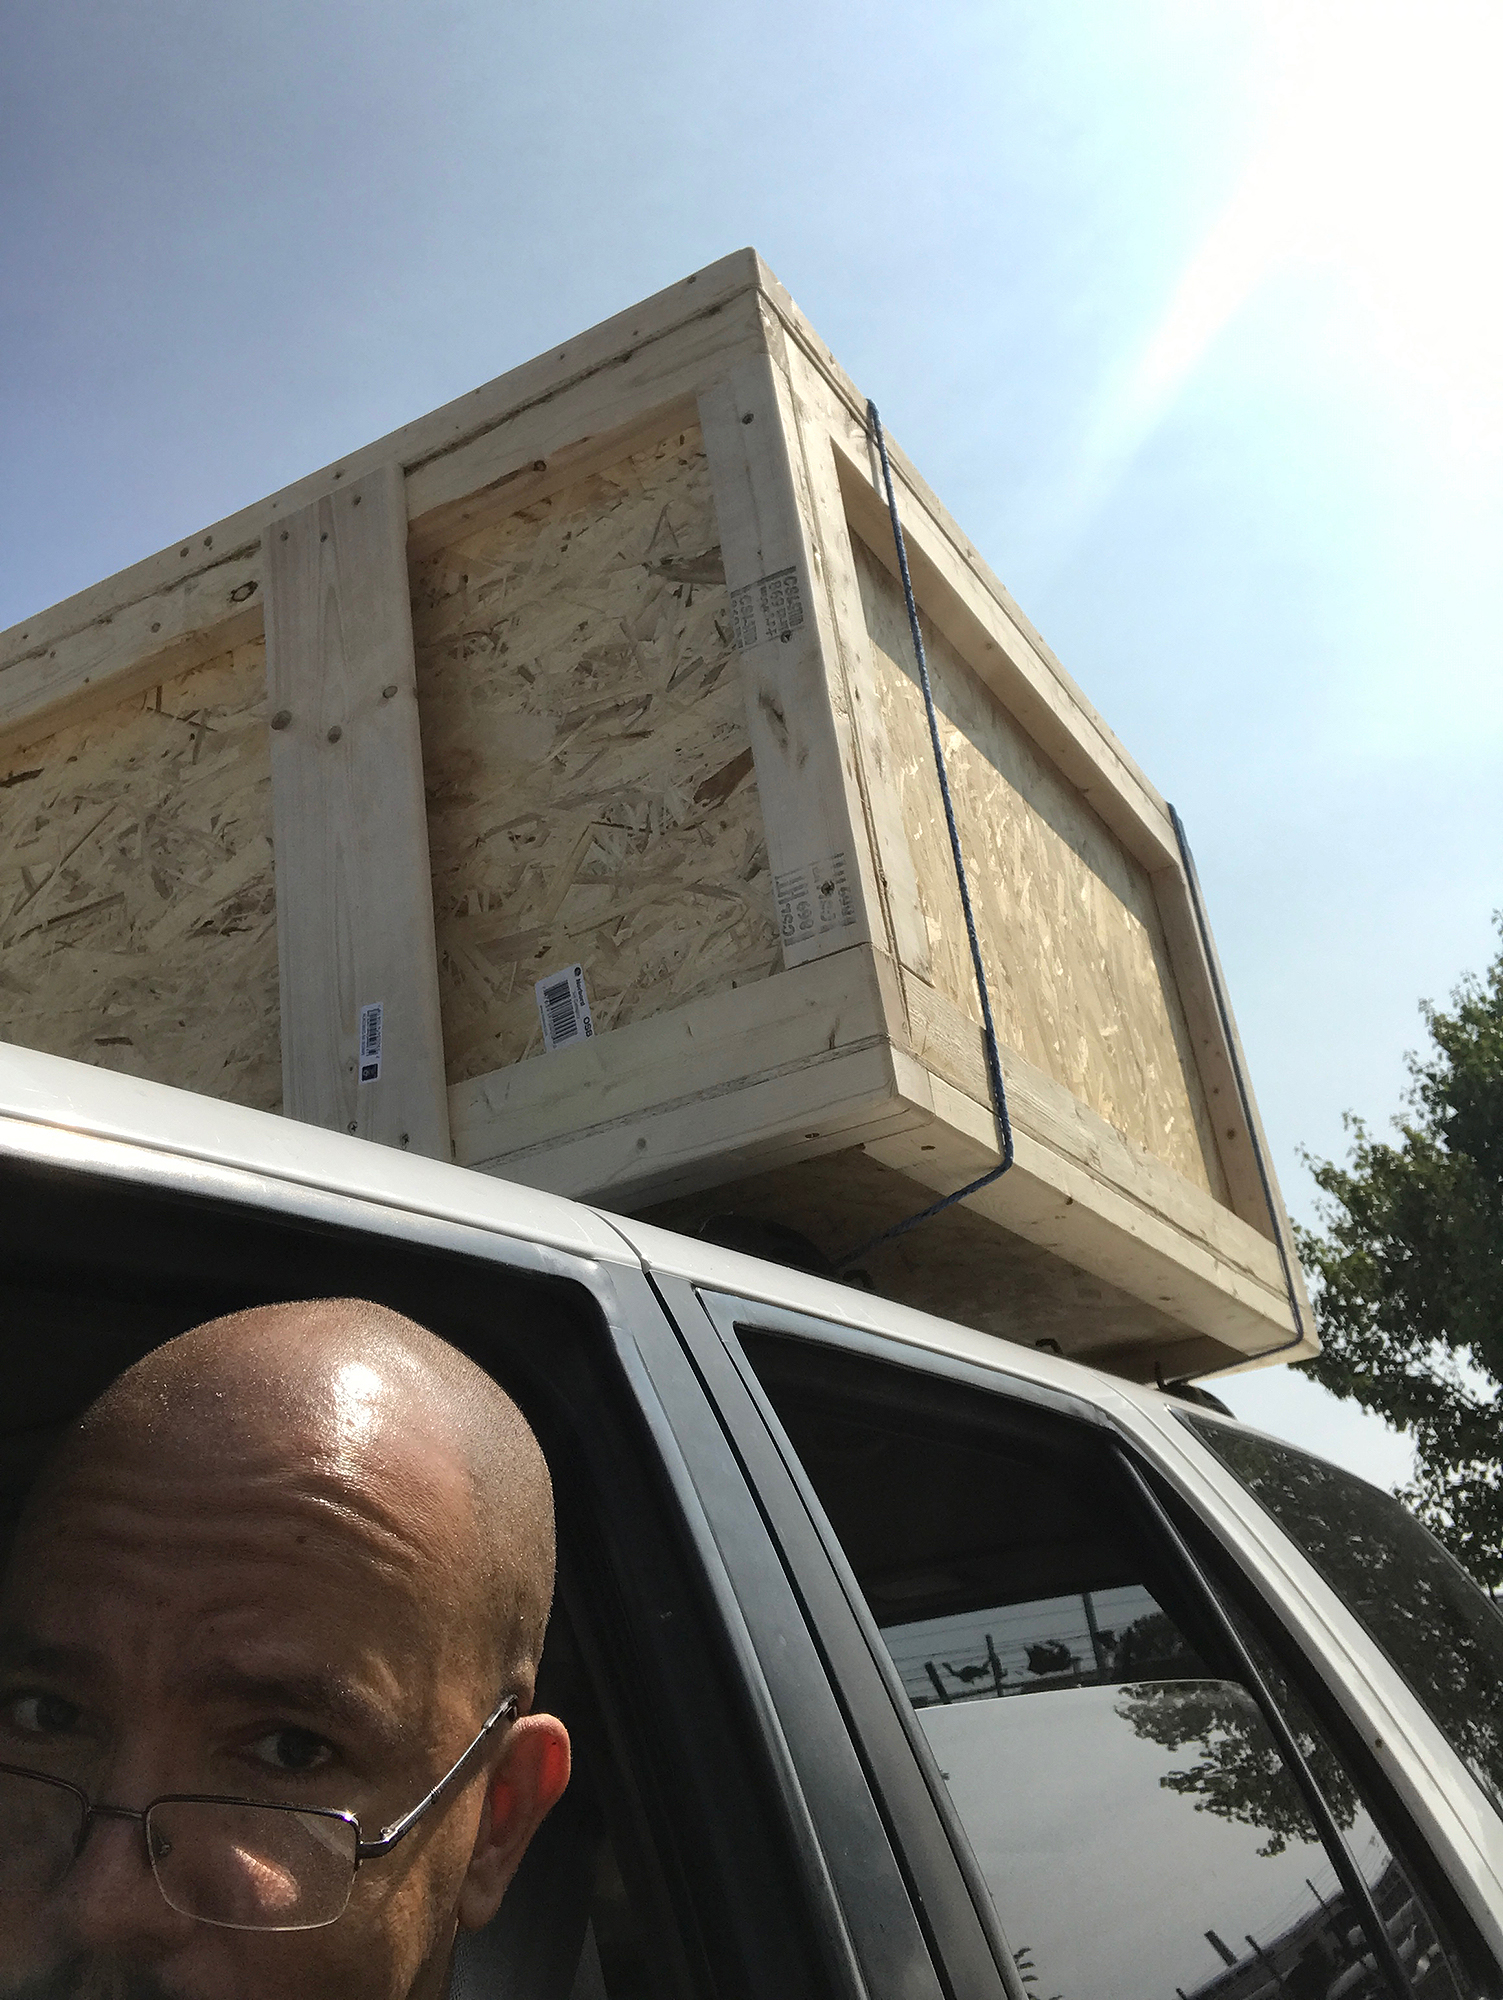 building a crate is one thing, moving it is another challenge